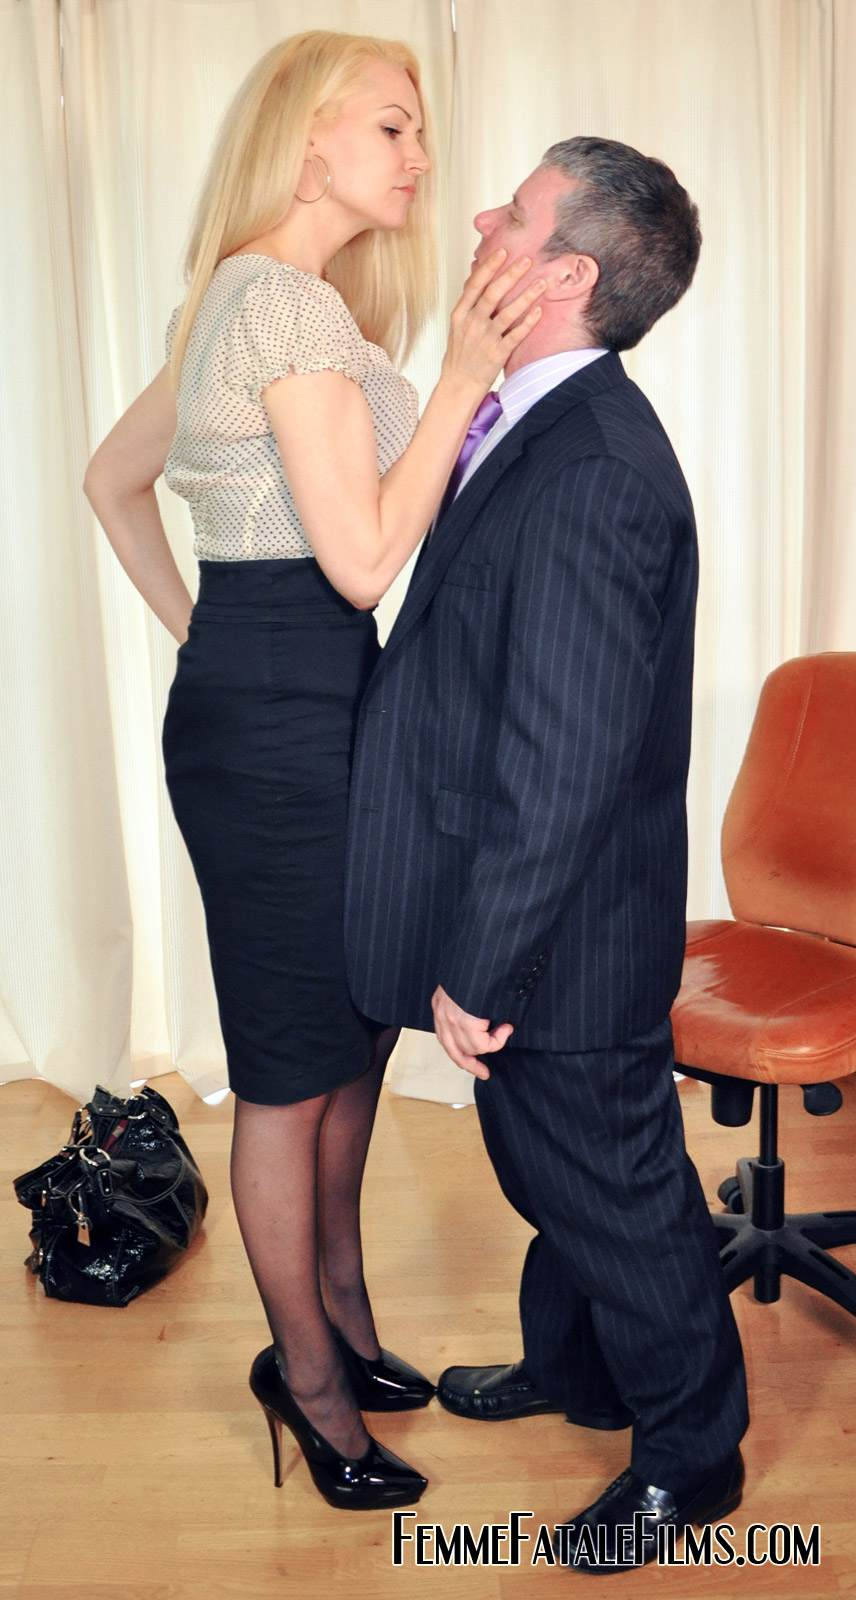 Picture #2 of Job interview ends up well for dominant secretary who spanks her future boss over the knee